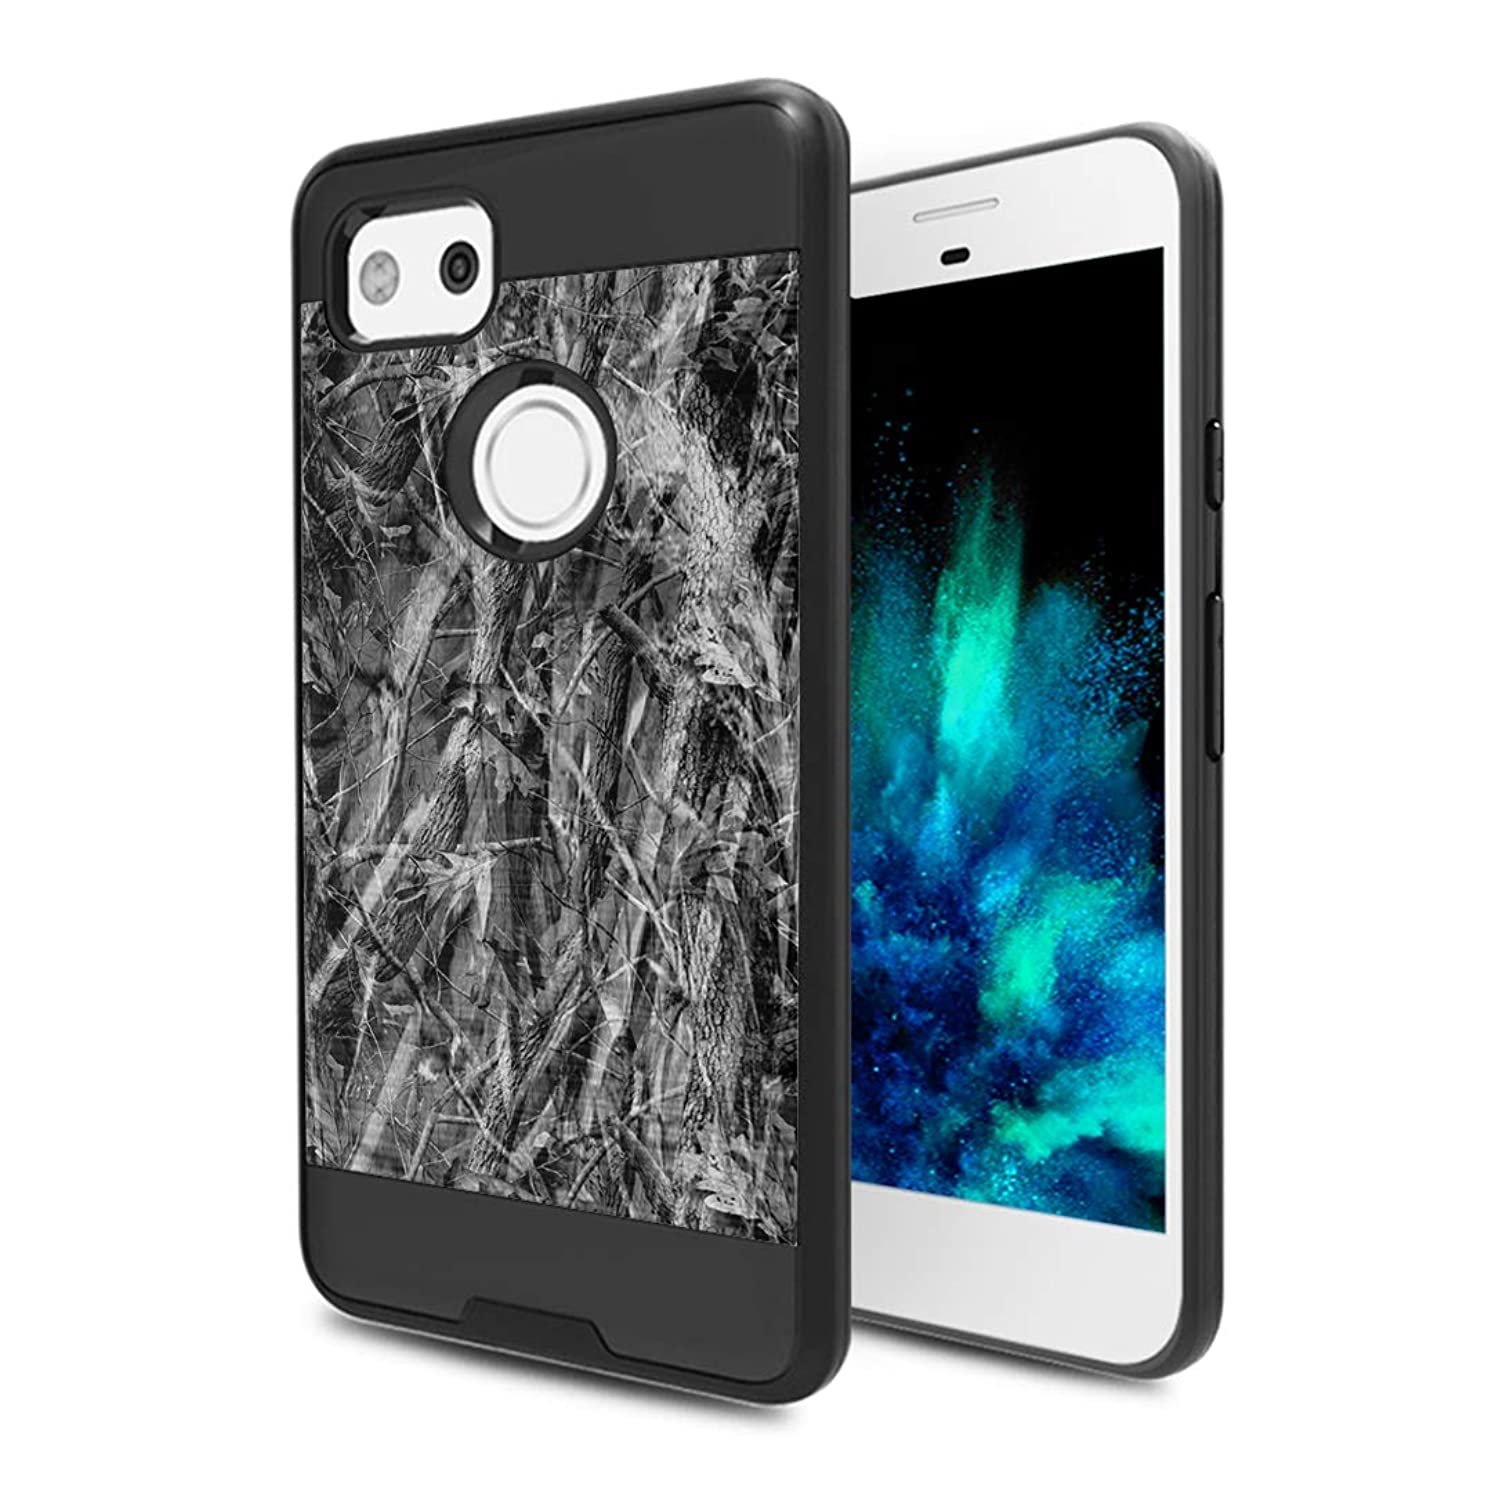 Capsule Case Compatible with Google Pixel 2 XL (2017) [Hybrid Fusion Dual Layer Slick Armor Case Black] for Pixel 2XL- (Grey Hunter)